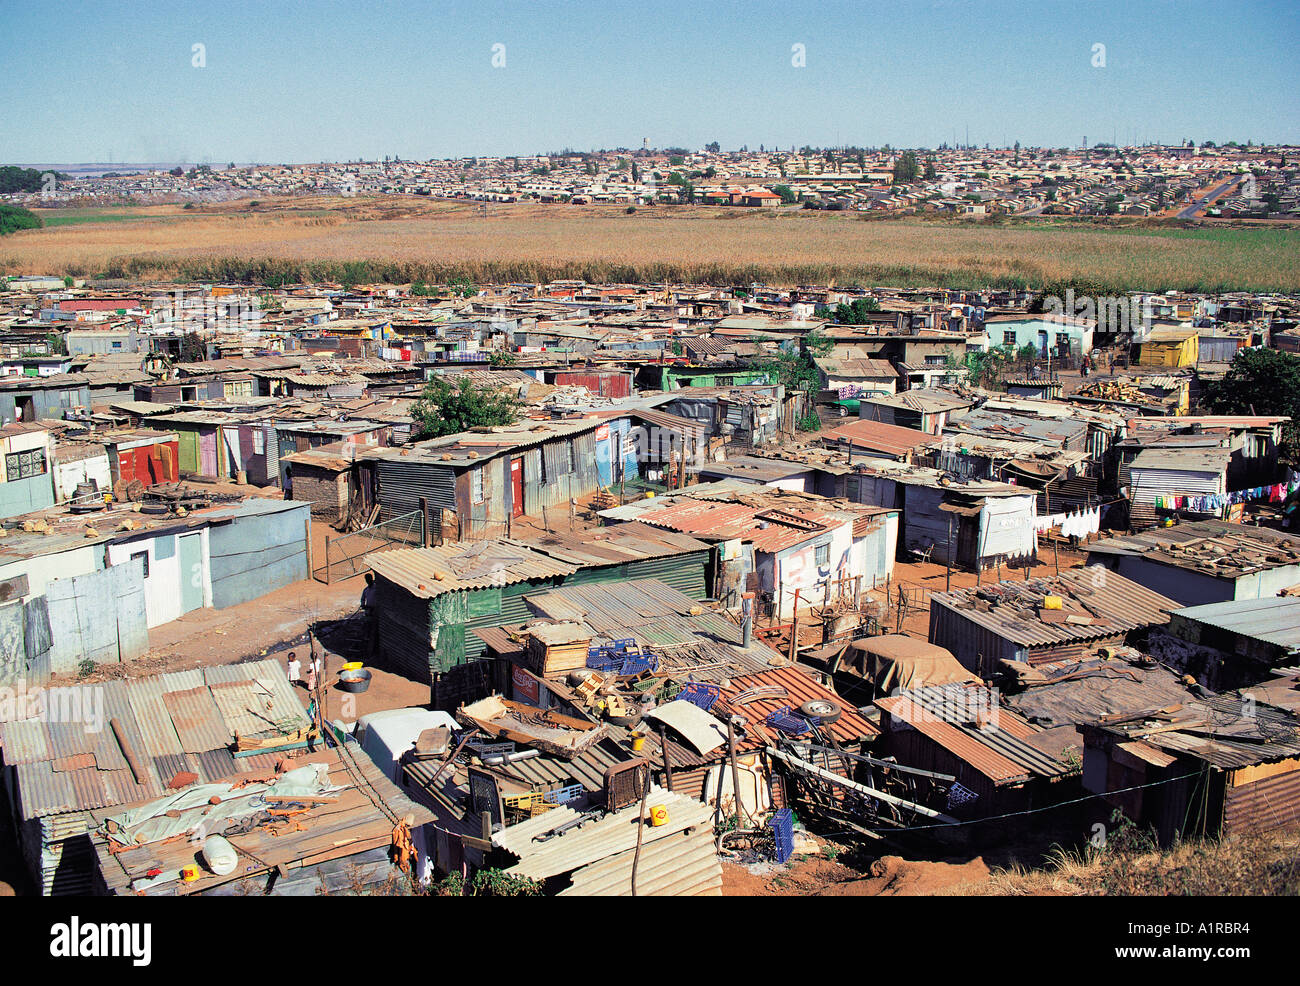 Homes In Shanty Town Area Of Soweto Near Johannesburg